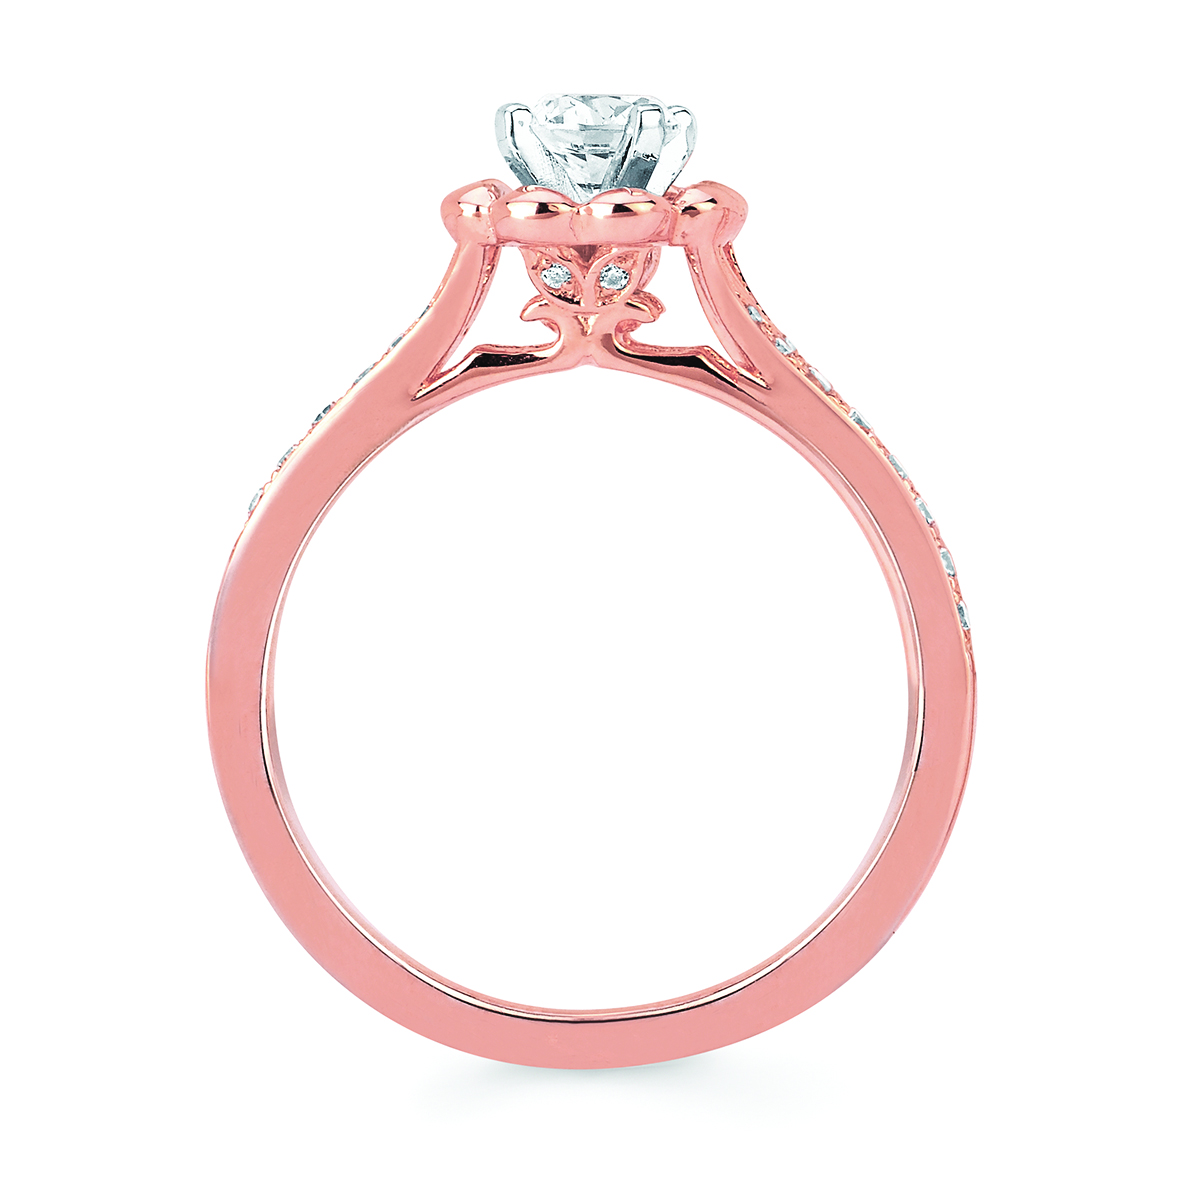 14k Rose Gold Engagement Set Image 2 James Gattas Jewelers Memphis, TN